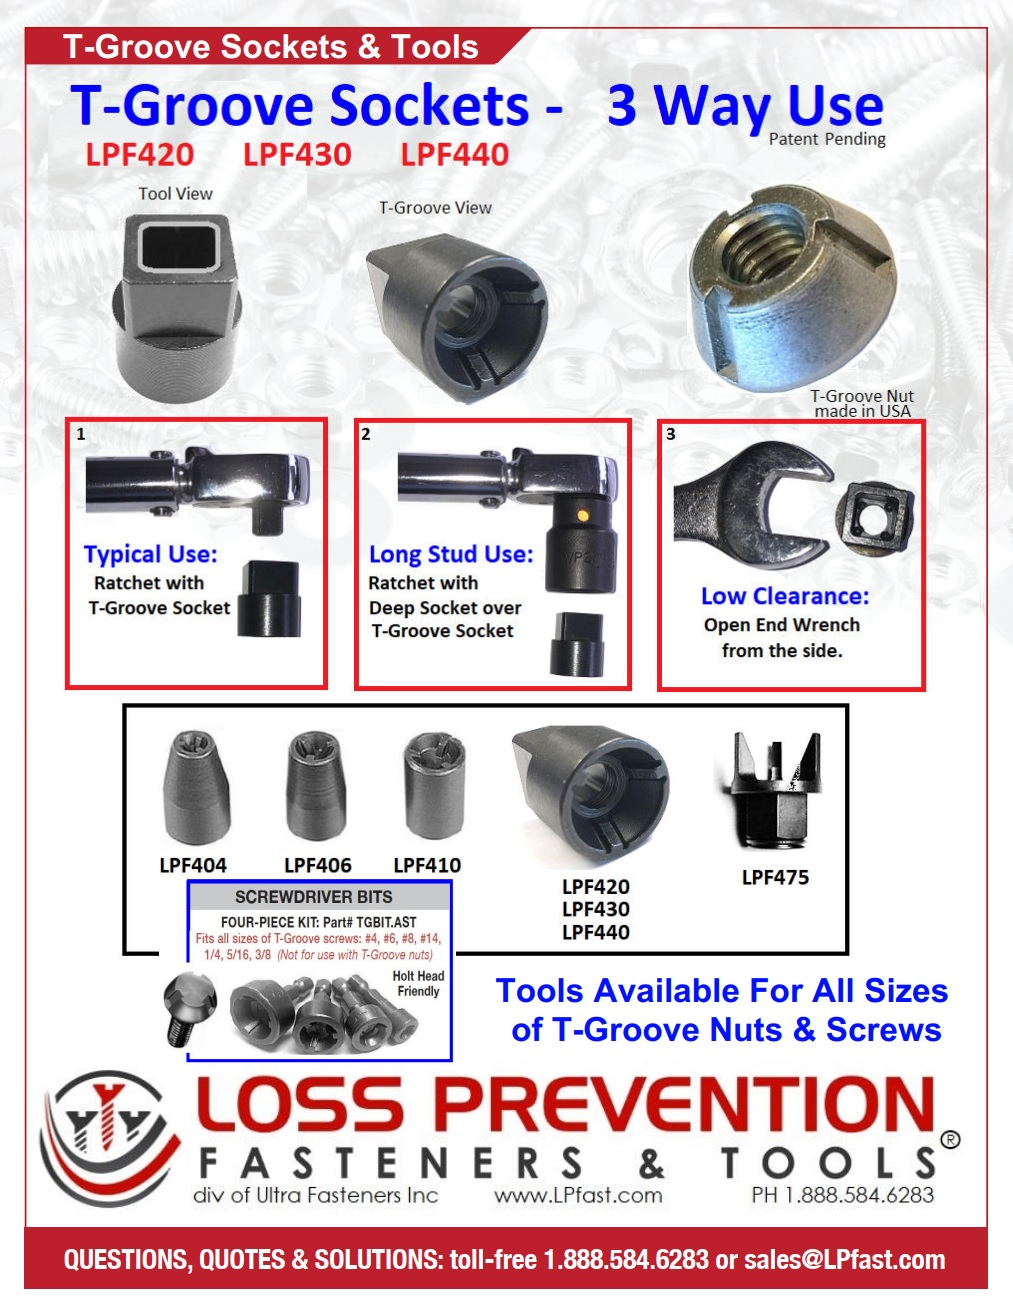 T-Groove Sockets and Tools